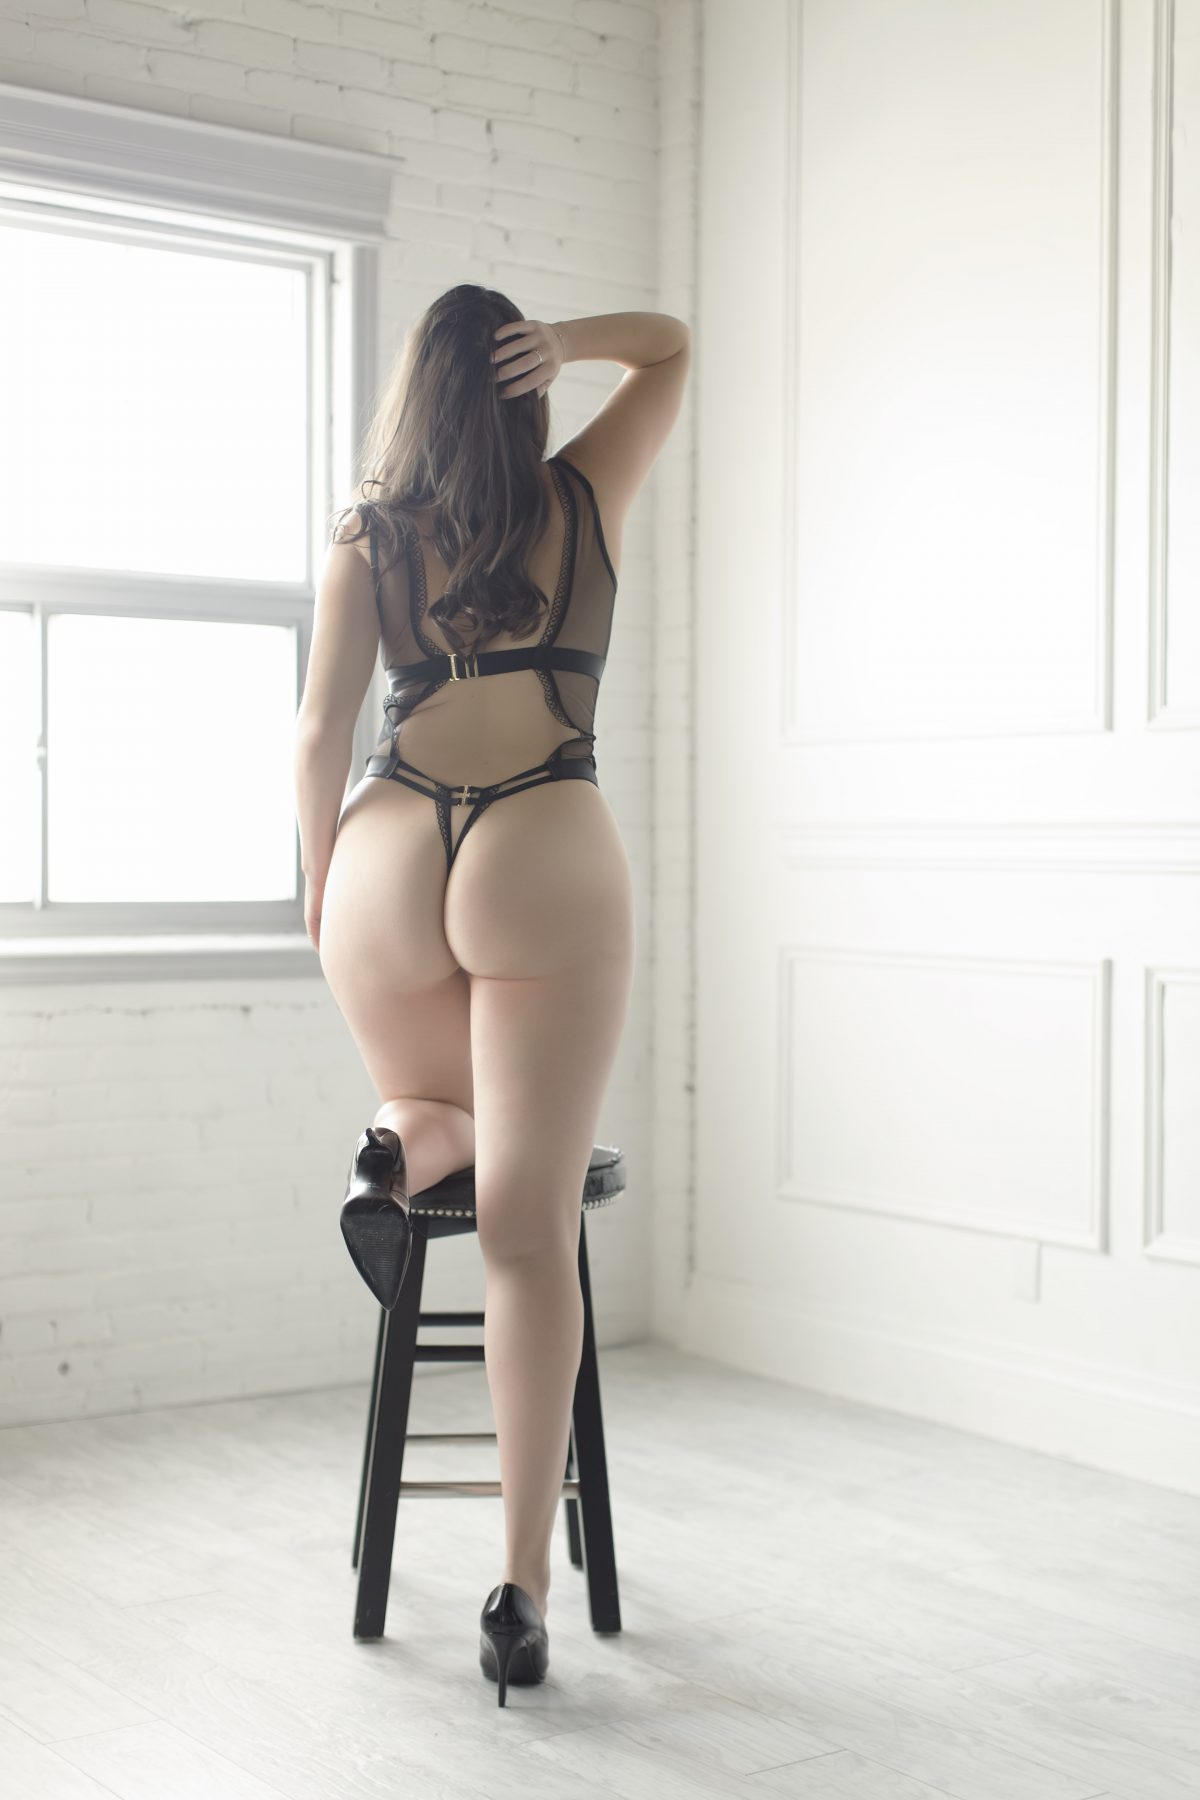 Toronto escorts companion upscale Parker Interests Duo Couple-friendly Disability-friendly Non-smoking Age Young Figure Slender Tall Breasts Natural Hair Brunette Ethnicity European Tattoos Small Video New Photos